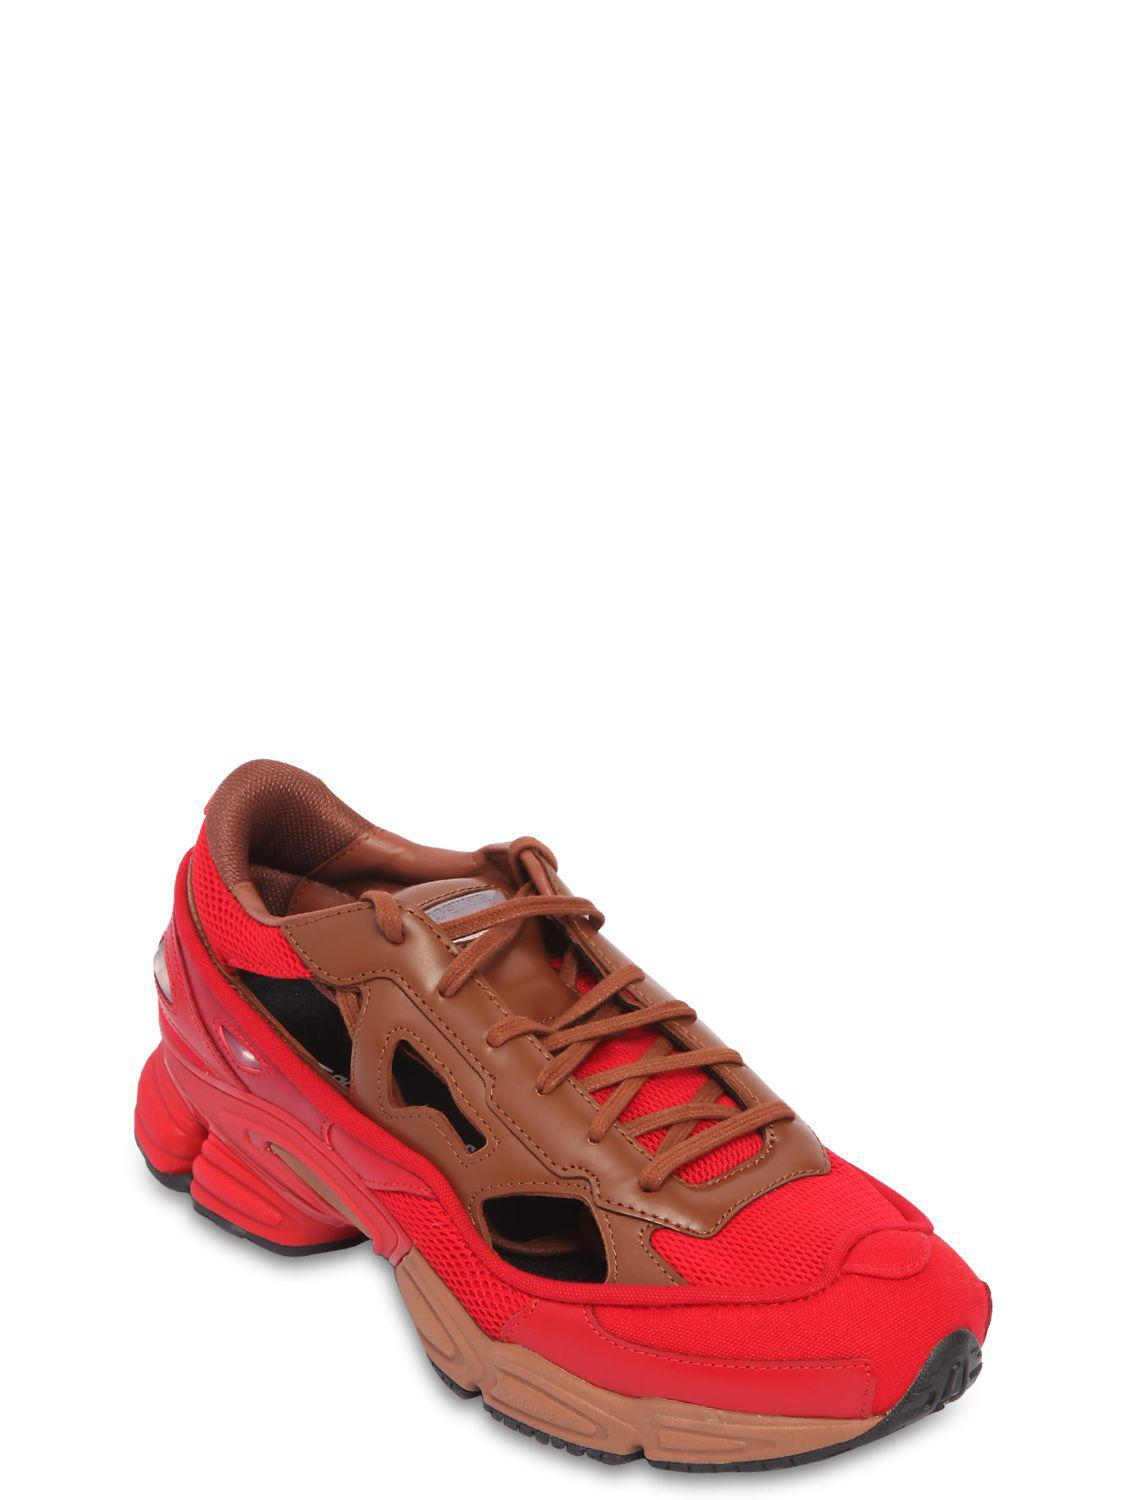 dbd65acf54bd Adidas By Raf Simons - Red Rs Replicant Ozweego Sneakers   Socks for Men -  Lyst. View fullscreen